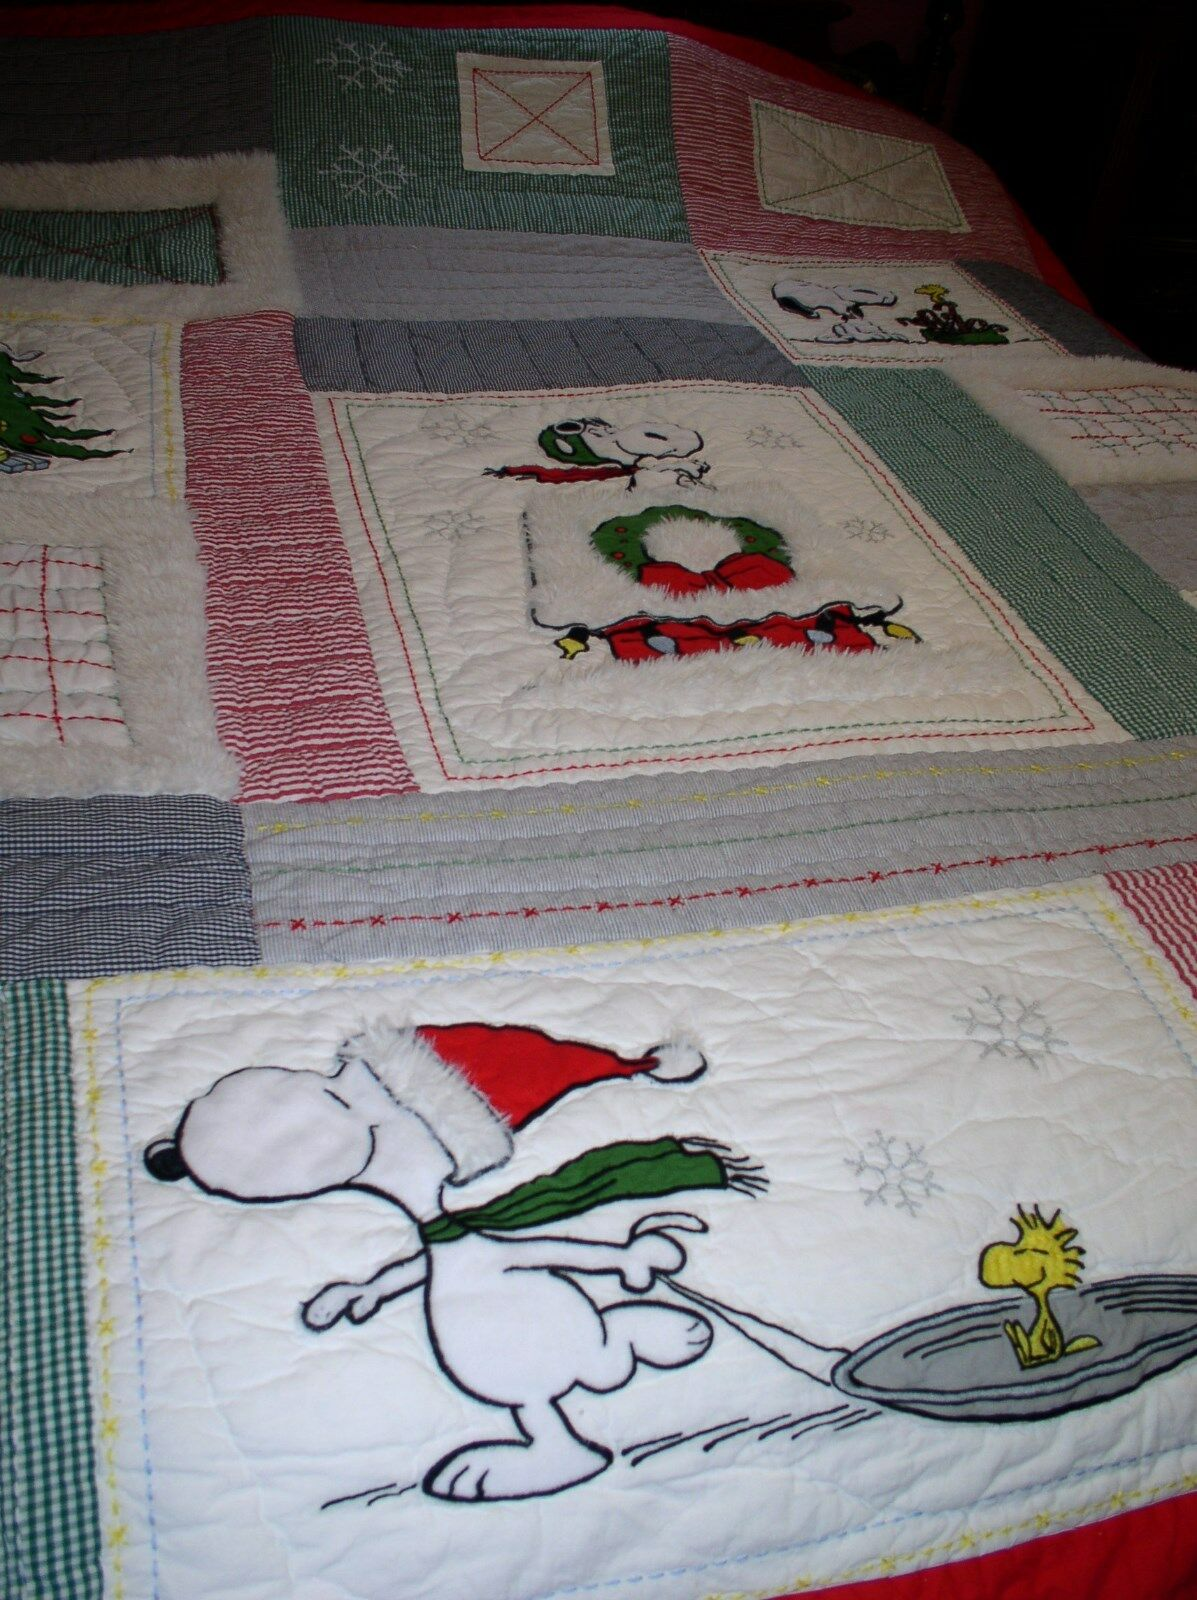 POTTERY BARN Kids SNOOPY PEANUTS Twin Holiday 66 X86  Couette + Assorti Feuille Set